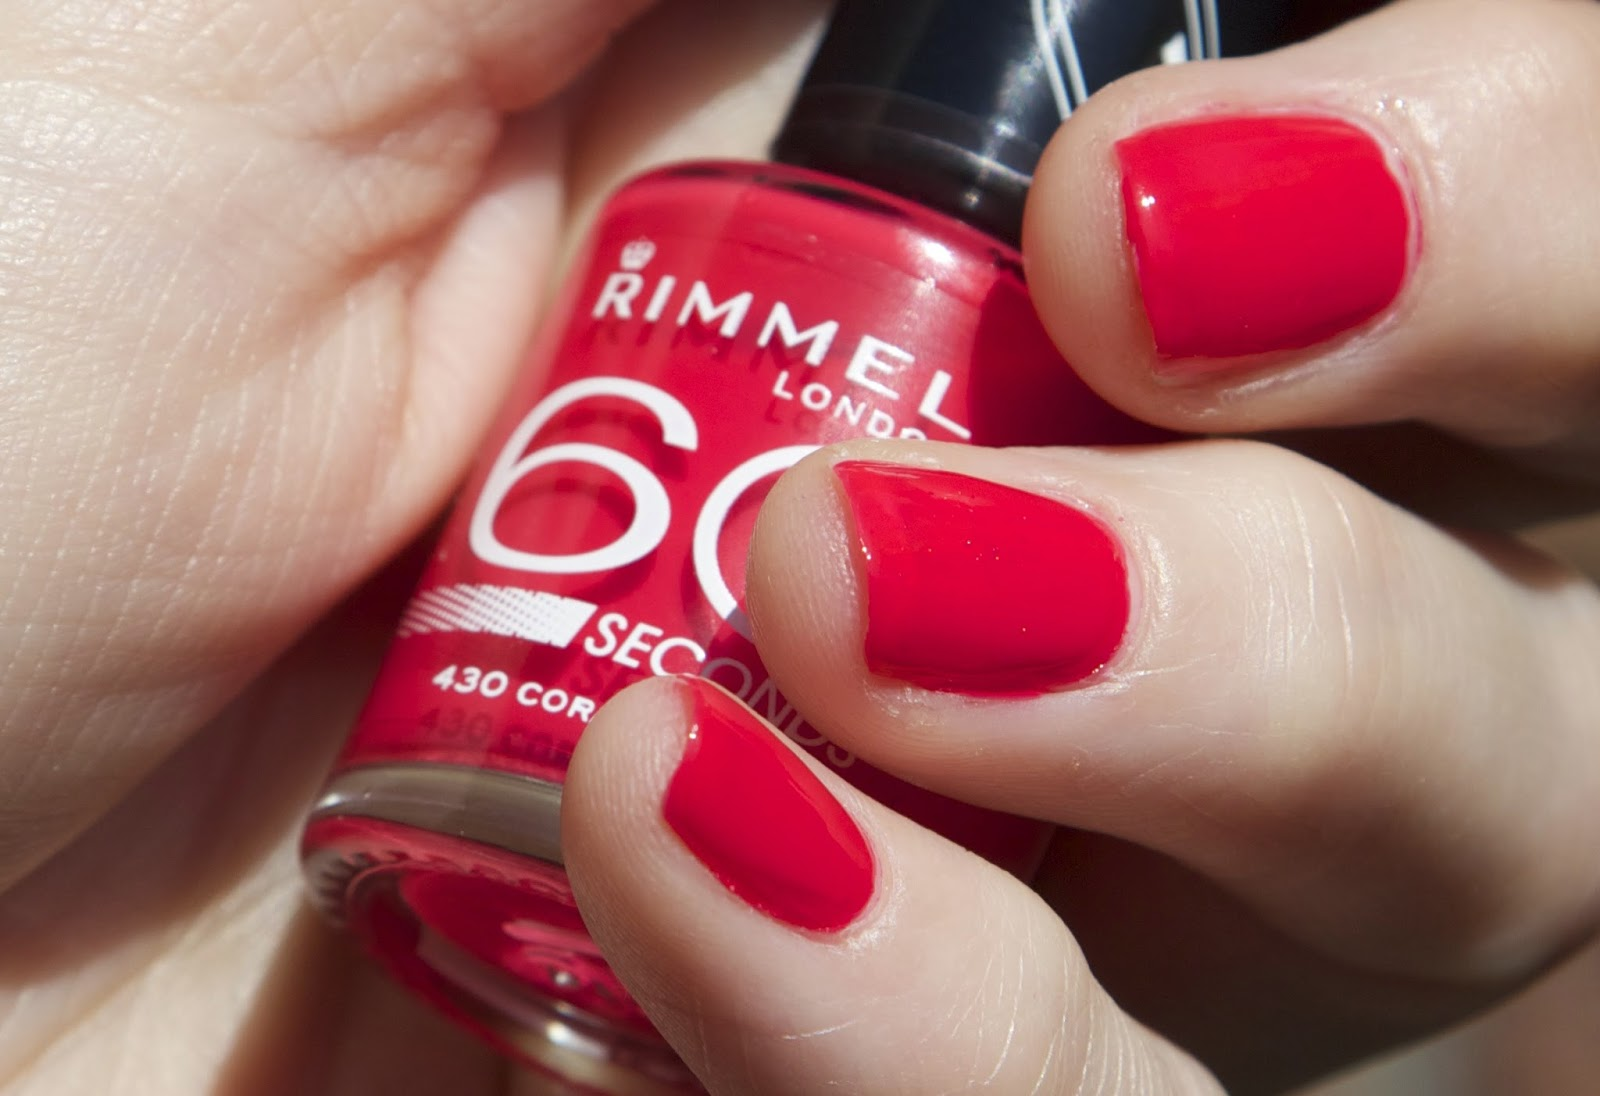 nagellak swatches rimmel essie long stem roses coralicious, ready aim paint review